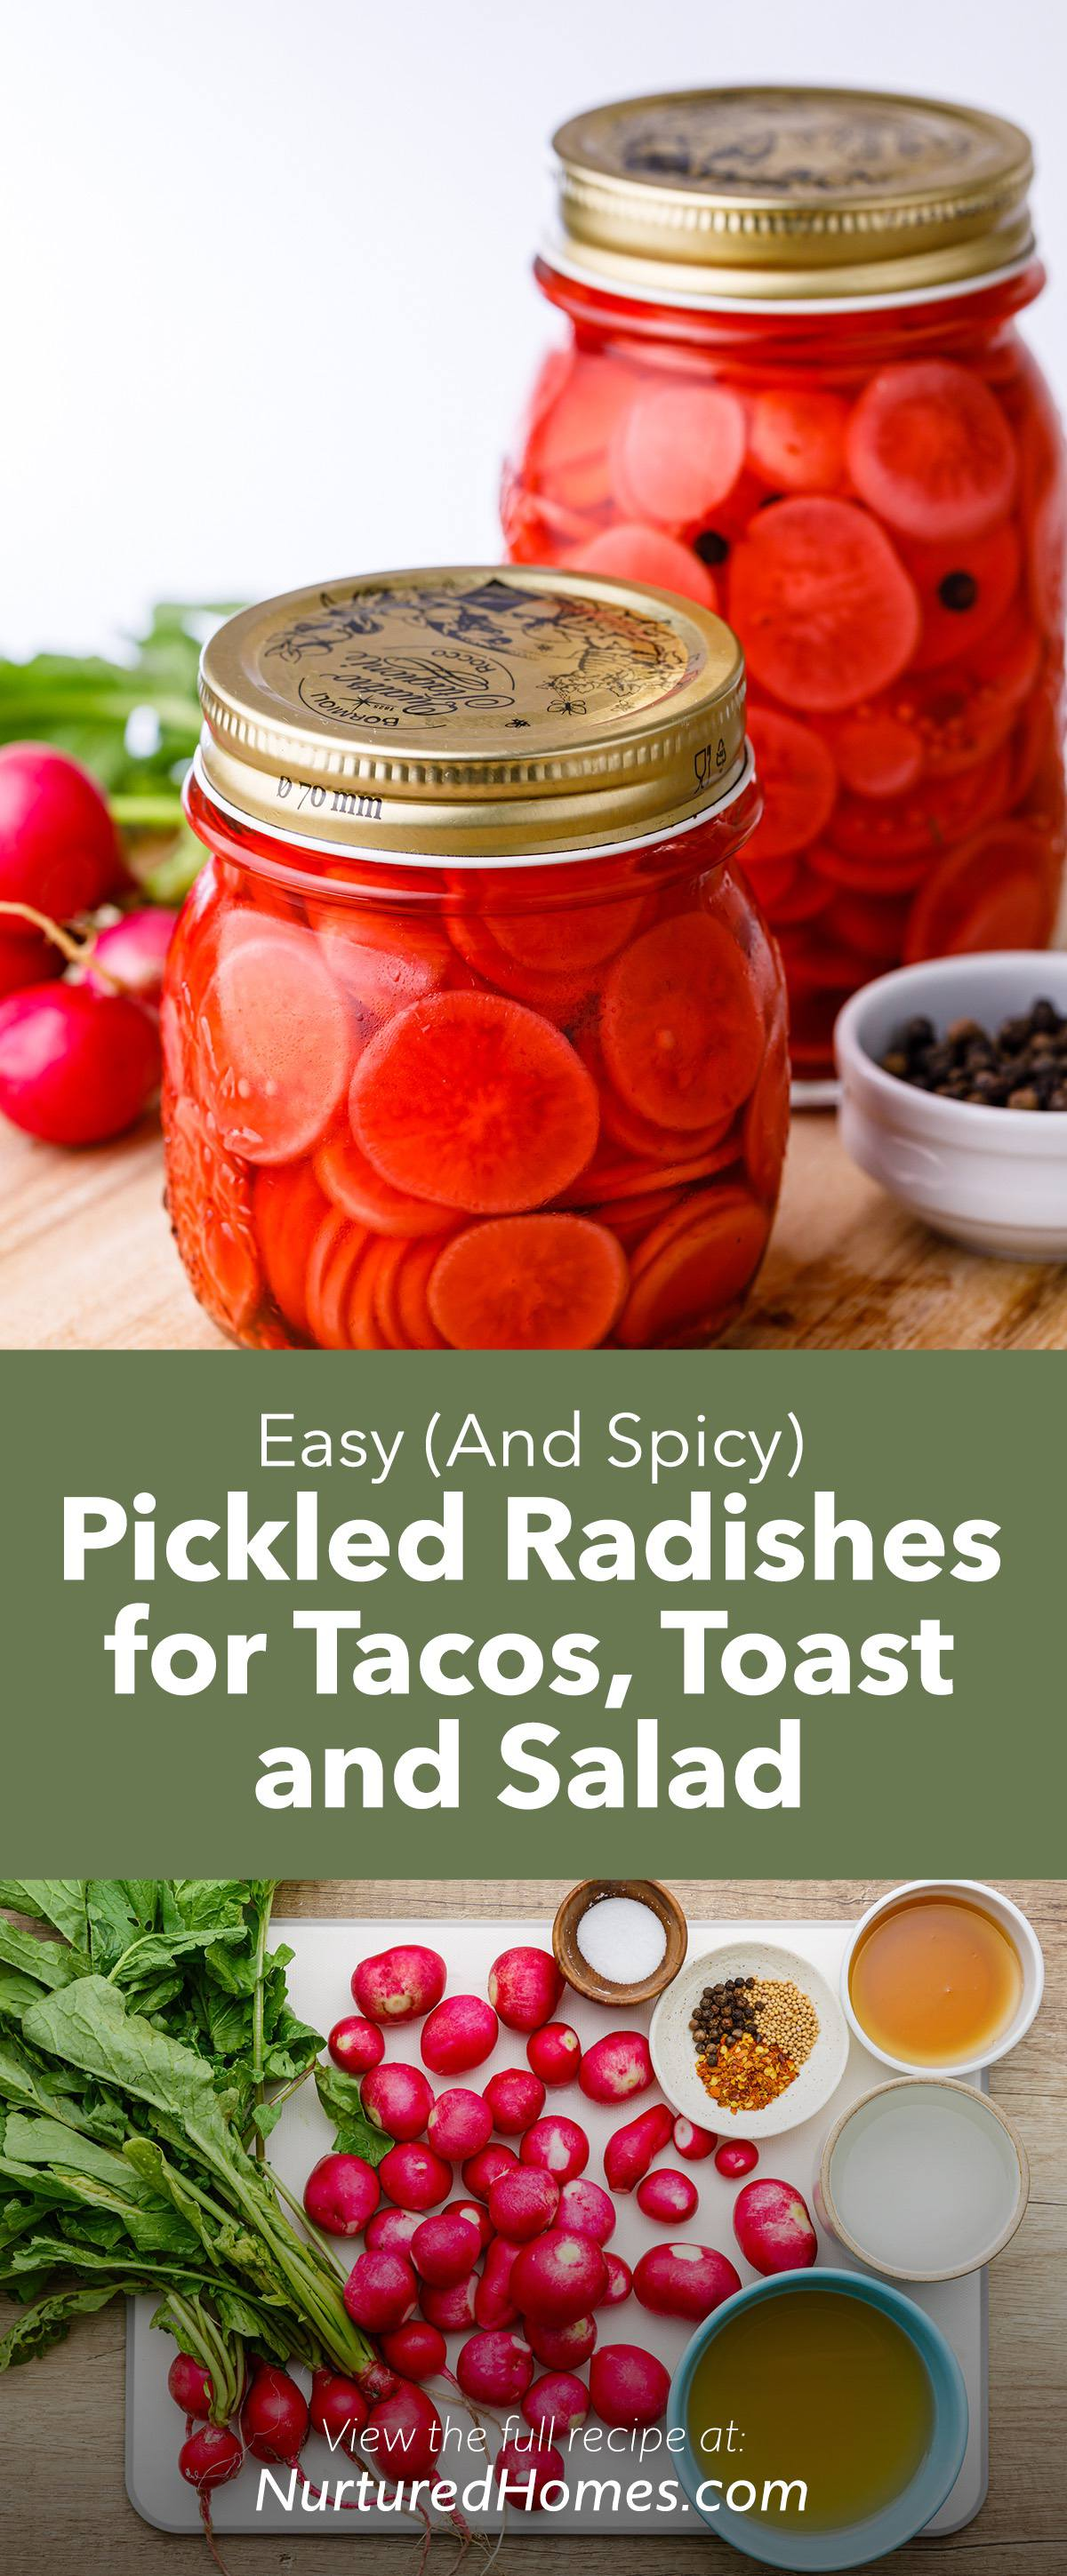 Easy (And Spicy) Pickled Radishes for Tacos, Toast and Salads